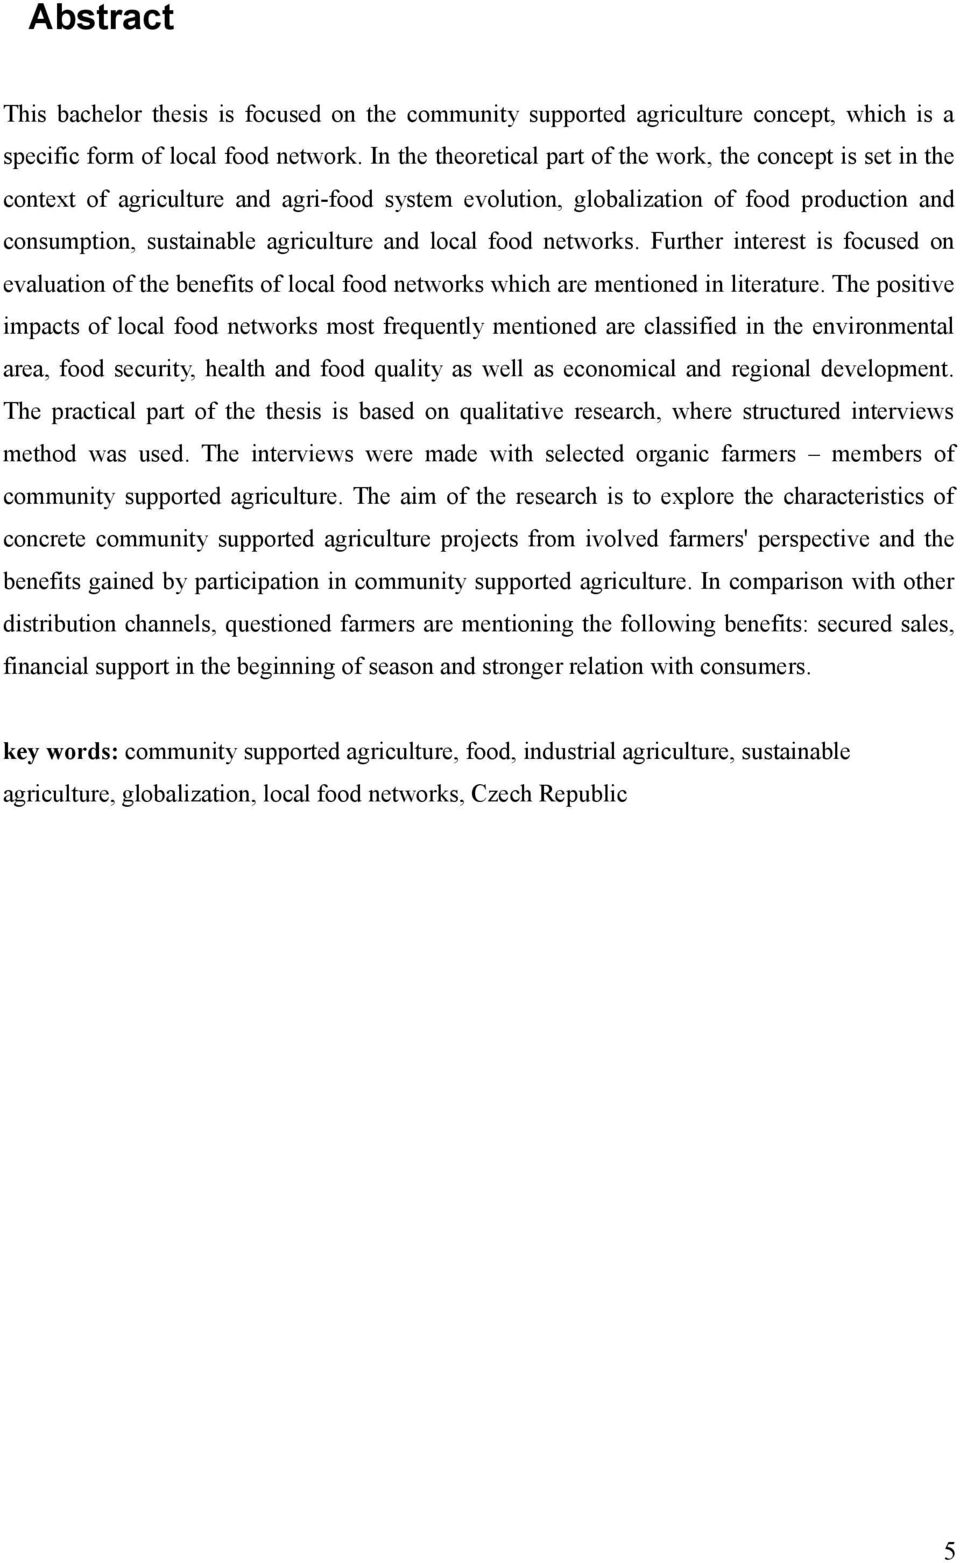 local food networks. Further interest is focused on evaluation of the benefits of local food networks which are mentioned in literature.